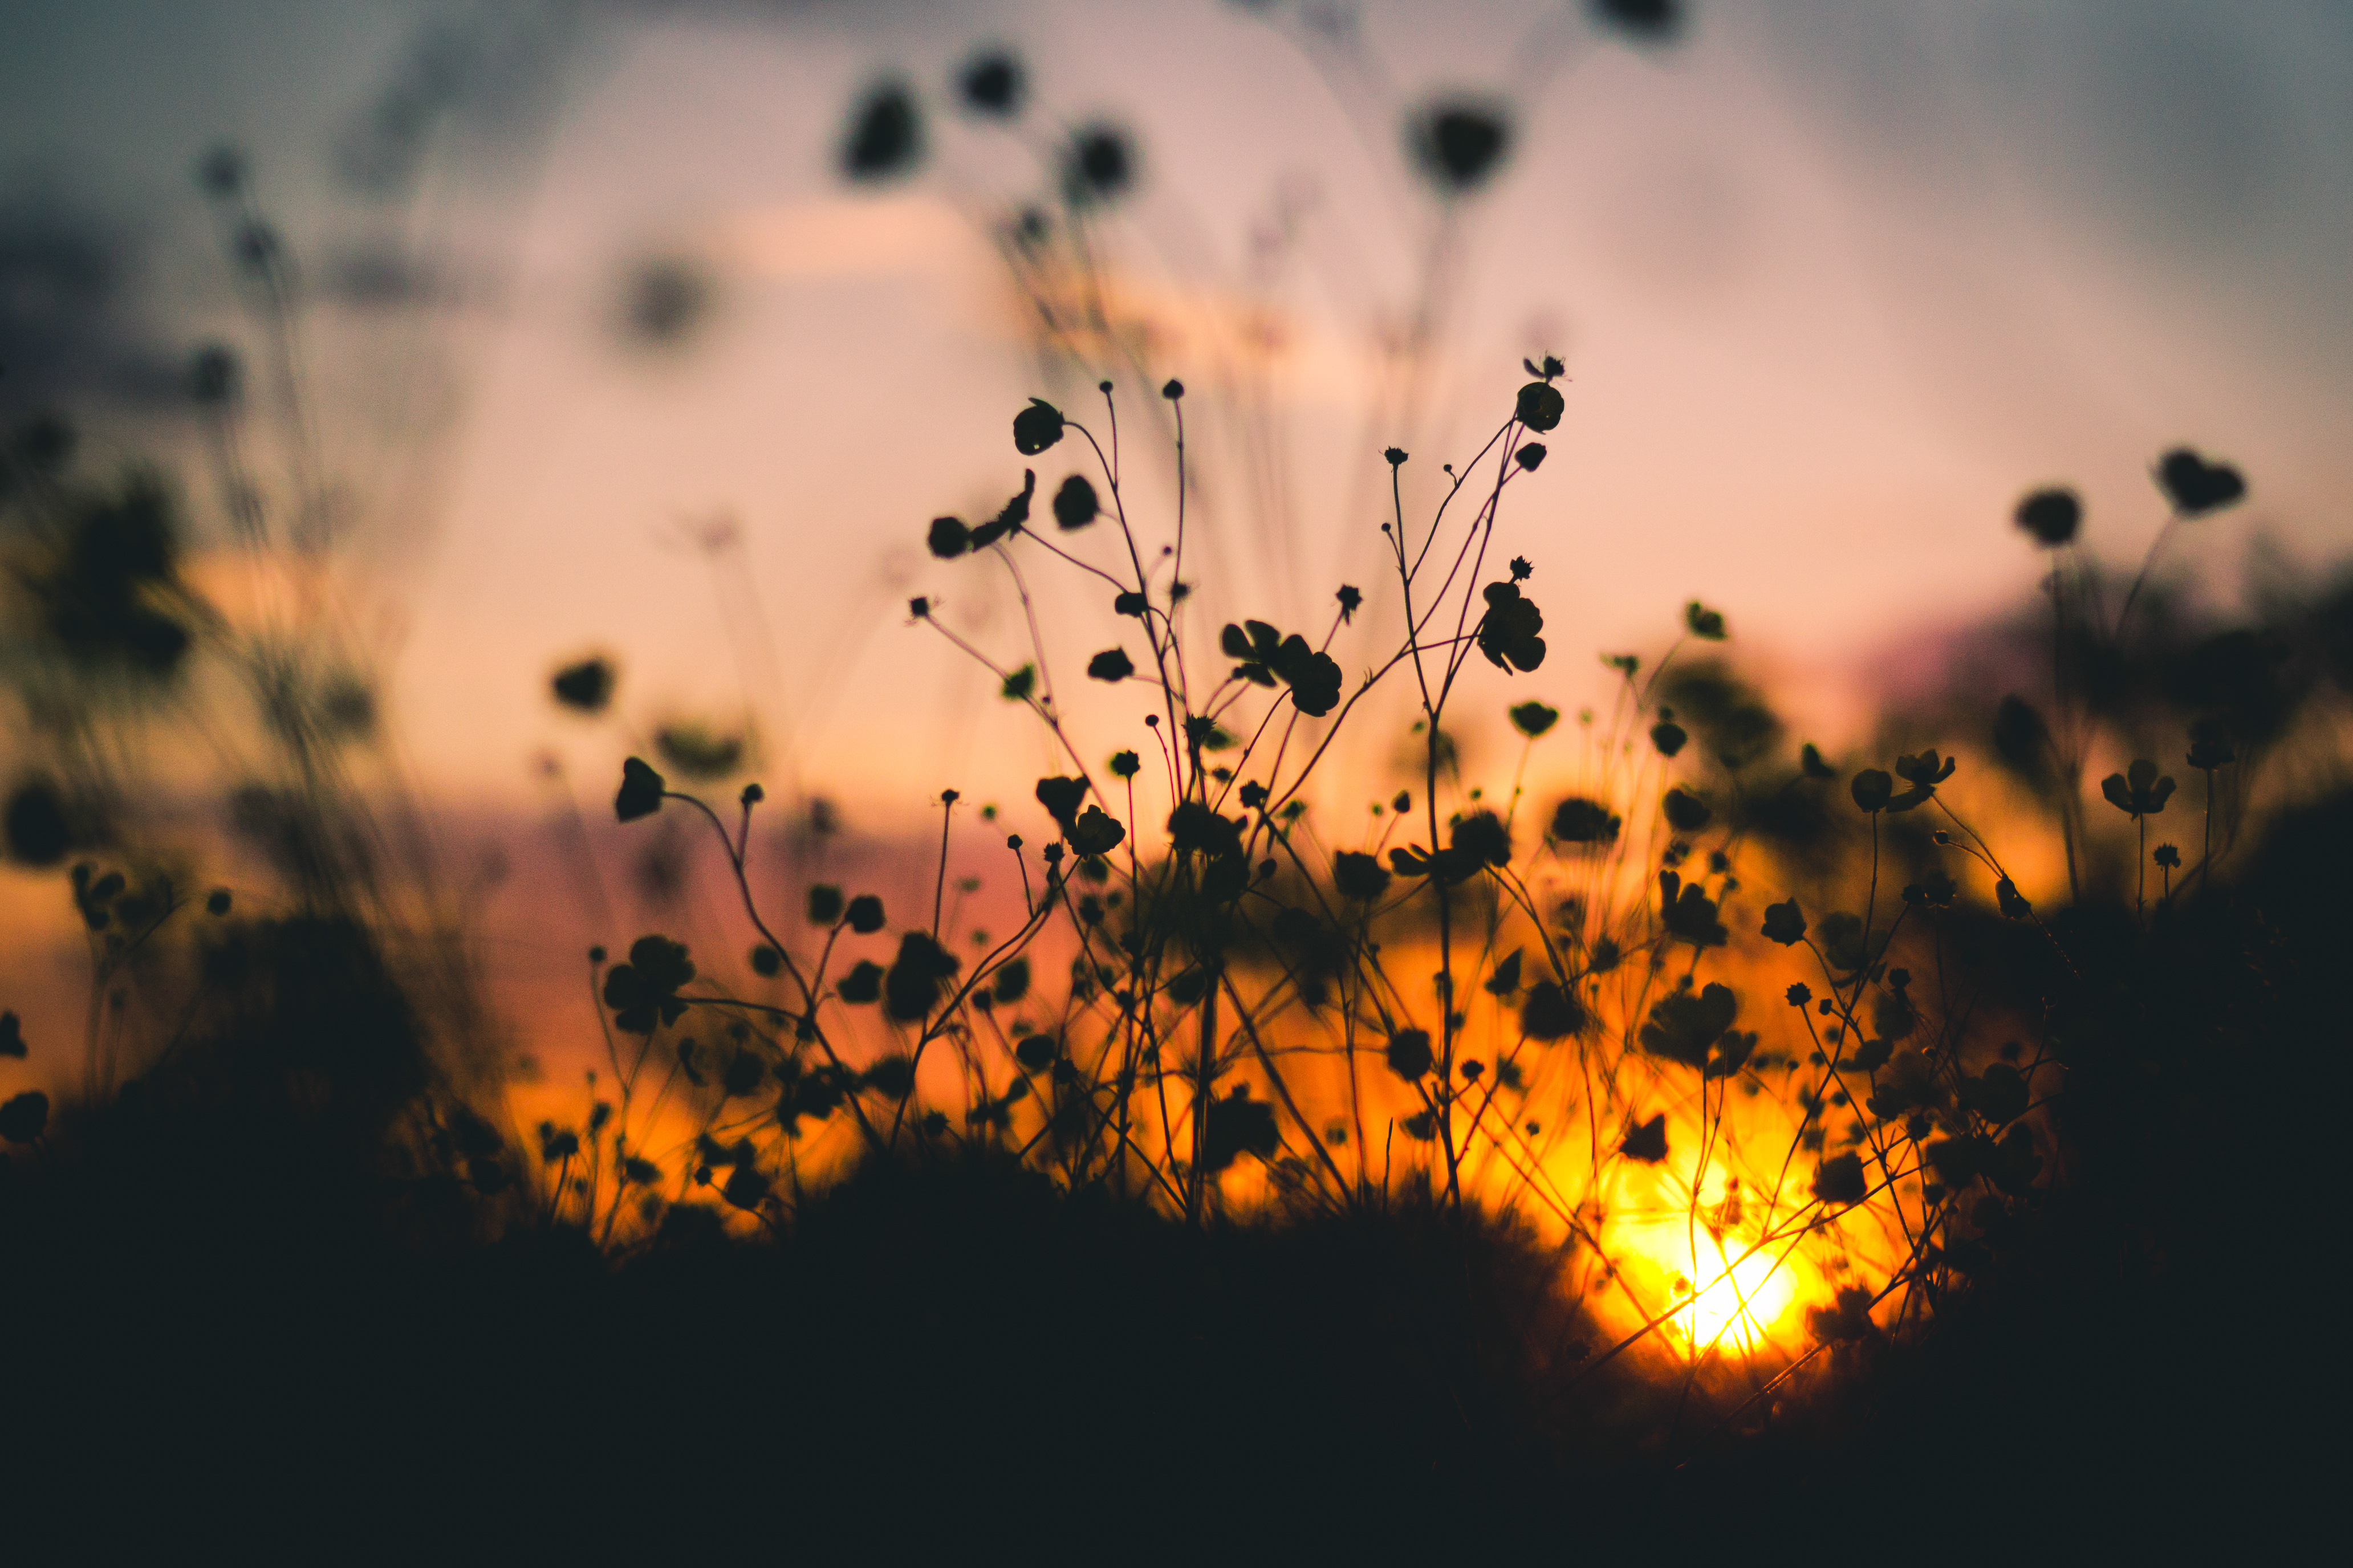 https://static.pexels.com/photos/7314/nature-sunset-flowers-silhouette.jpg